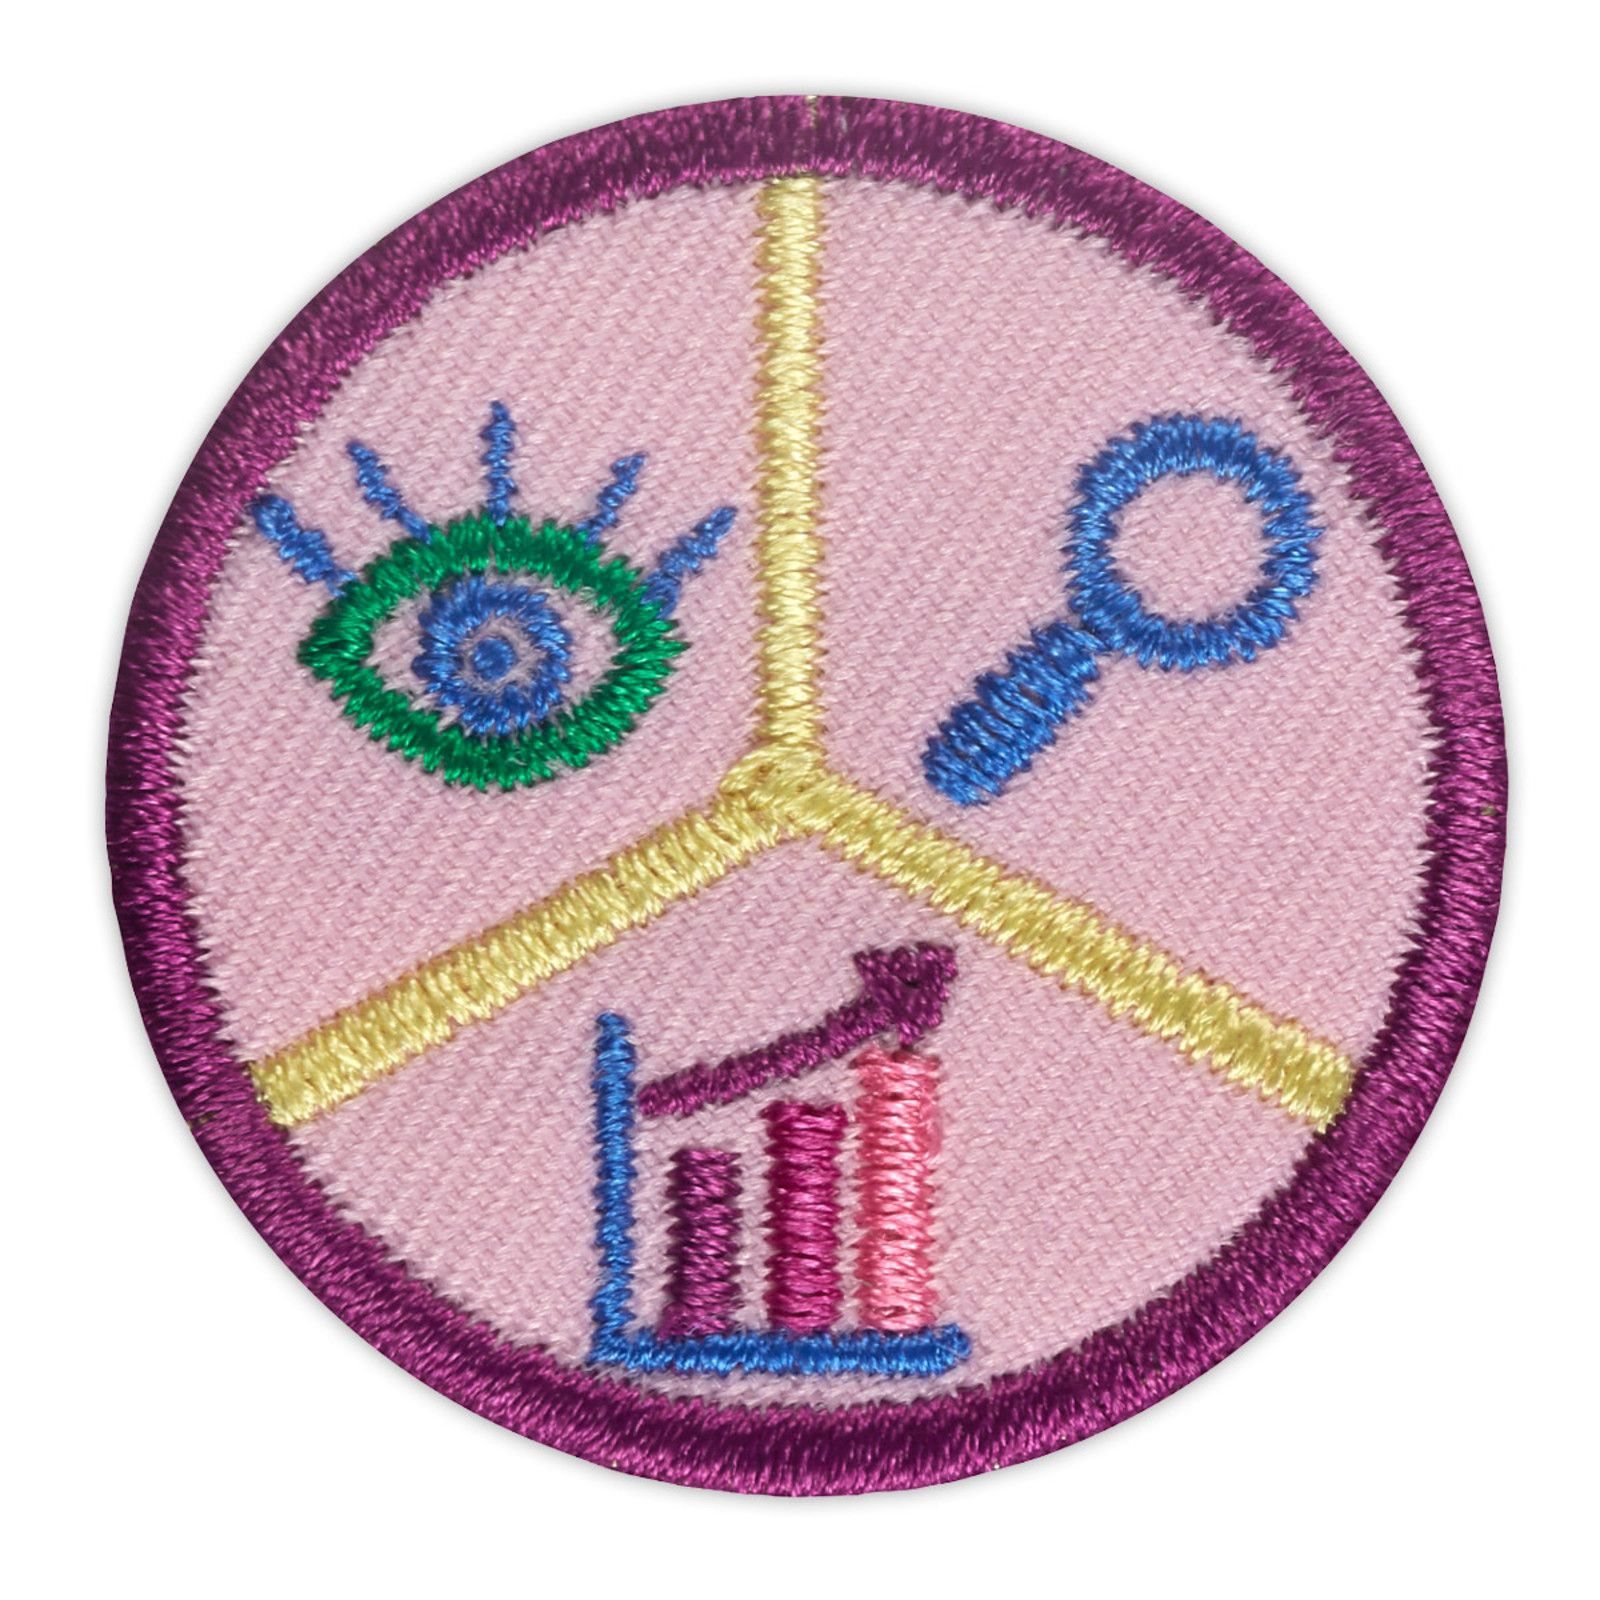 Junior Think Like A Citizen Scientist Award Badge